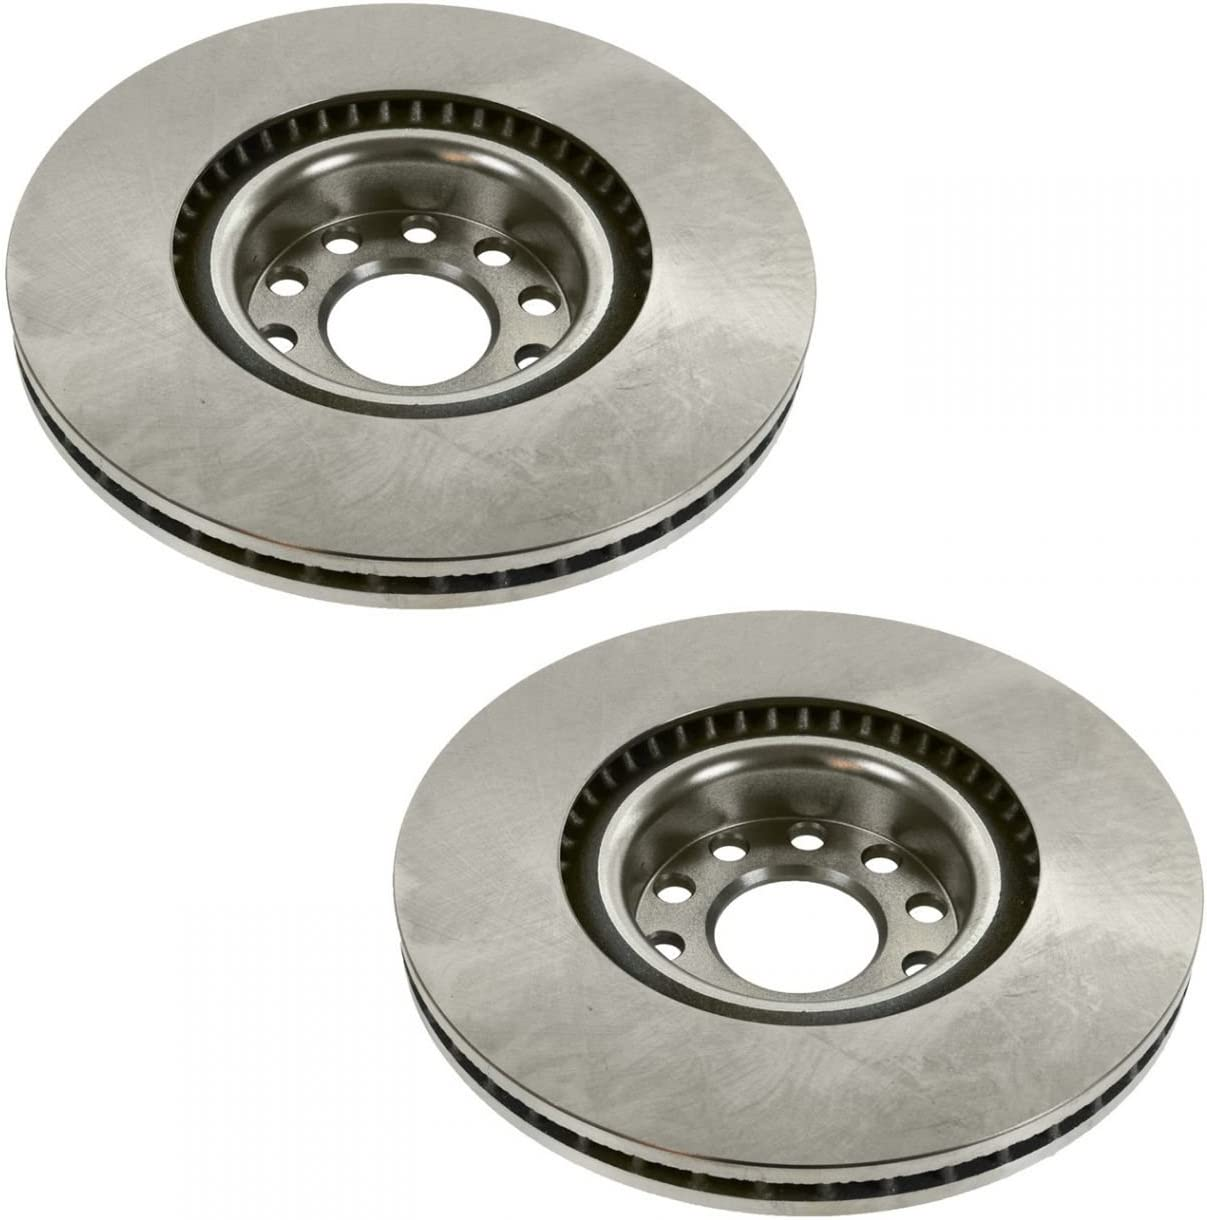 2005 for Audi A8 Quattro Front /& Rear Brake Rotors and Pads w//321mm Dia